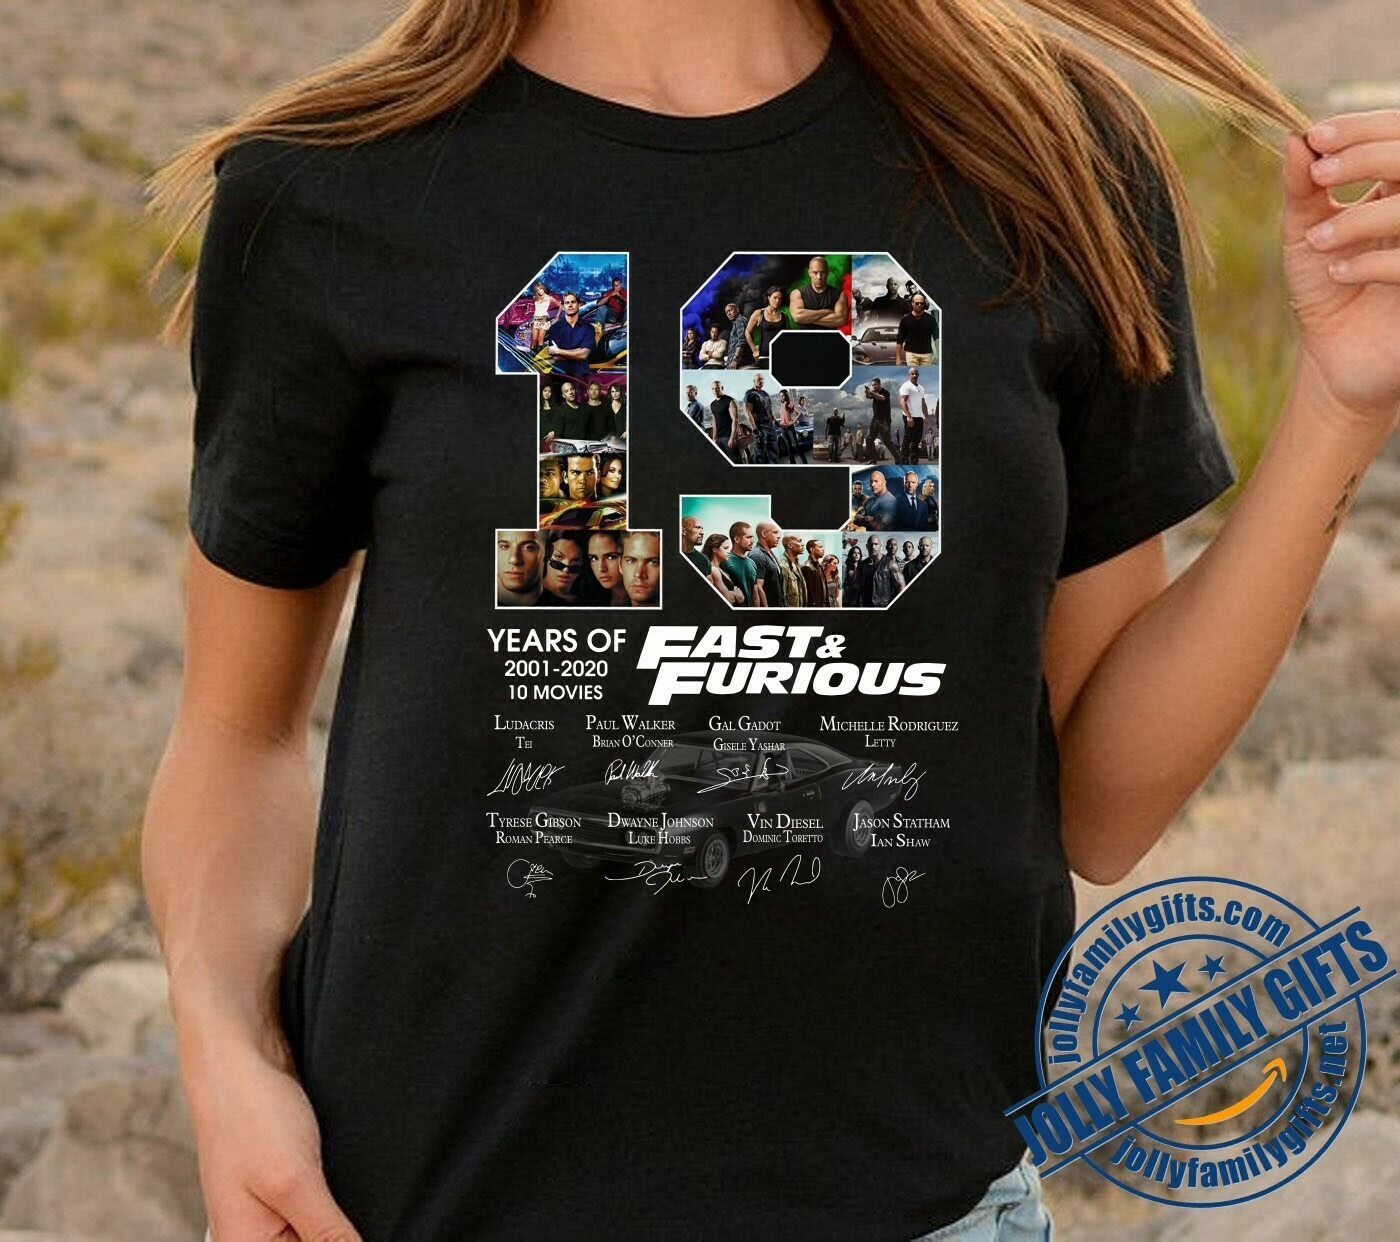 19 Years of Fast and Furious 2001 2020 10 Movies Signature Thank You For The Memories Awesome Gift for F&F Fans Action Movies Lovers  T-Shirt Hoodie Sweatshirt Sweater Tee Kids Youth Gifts Jolly